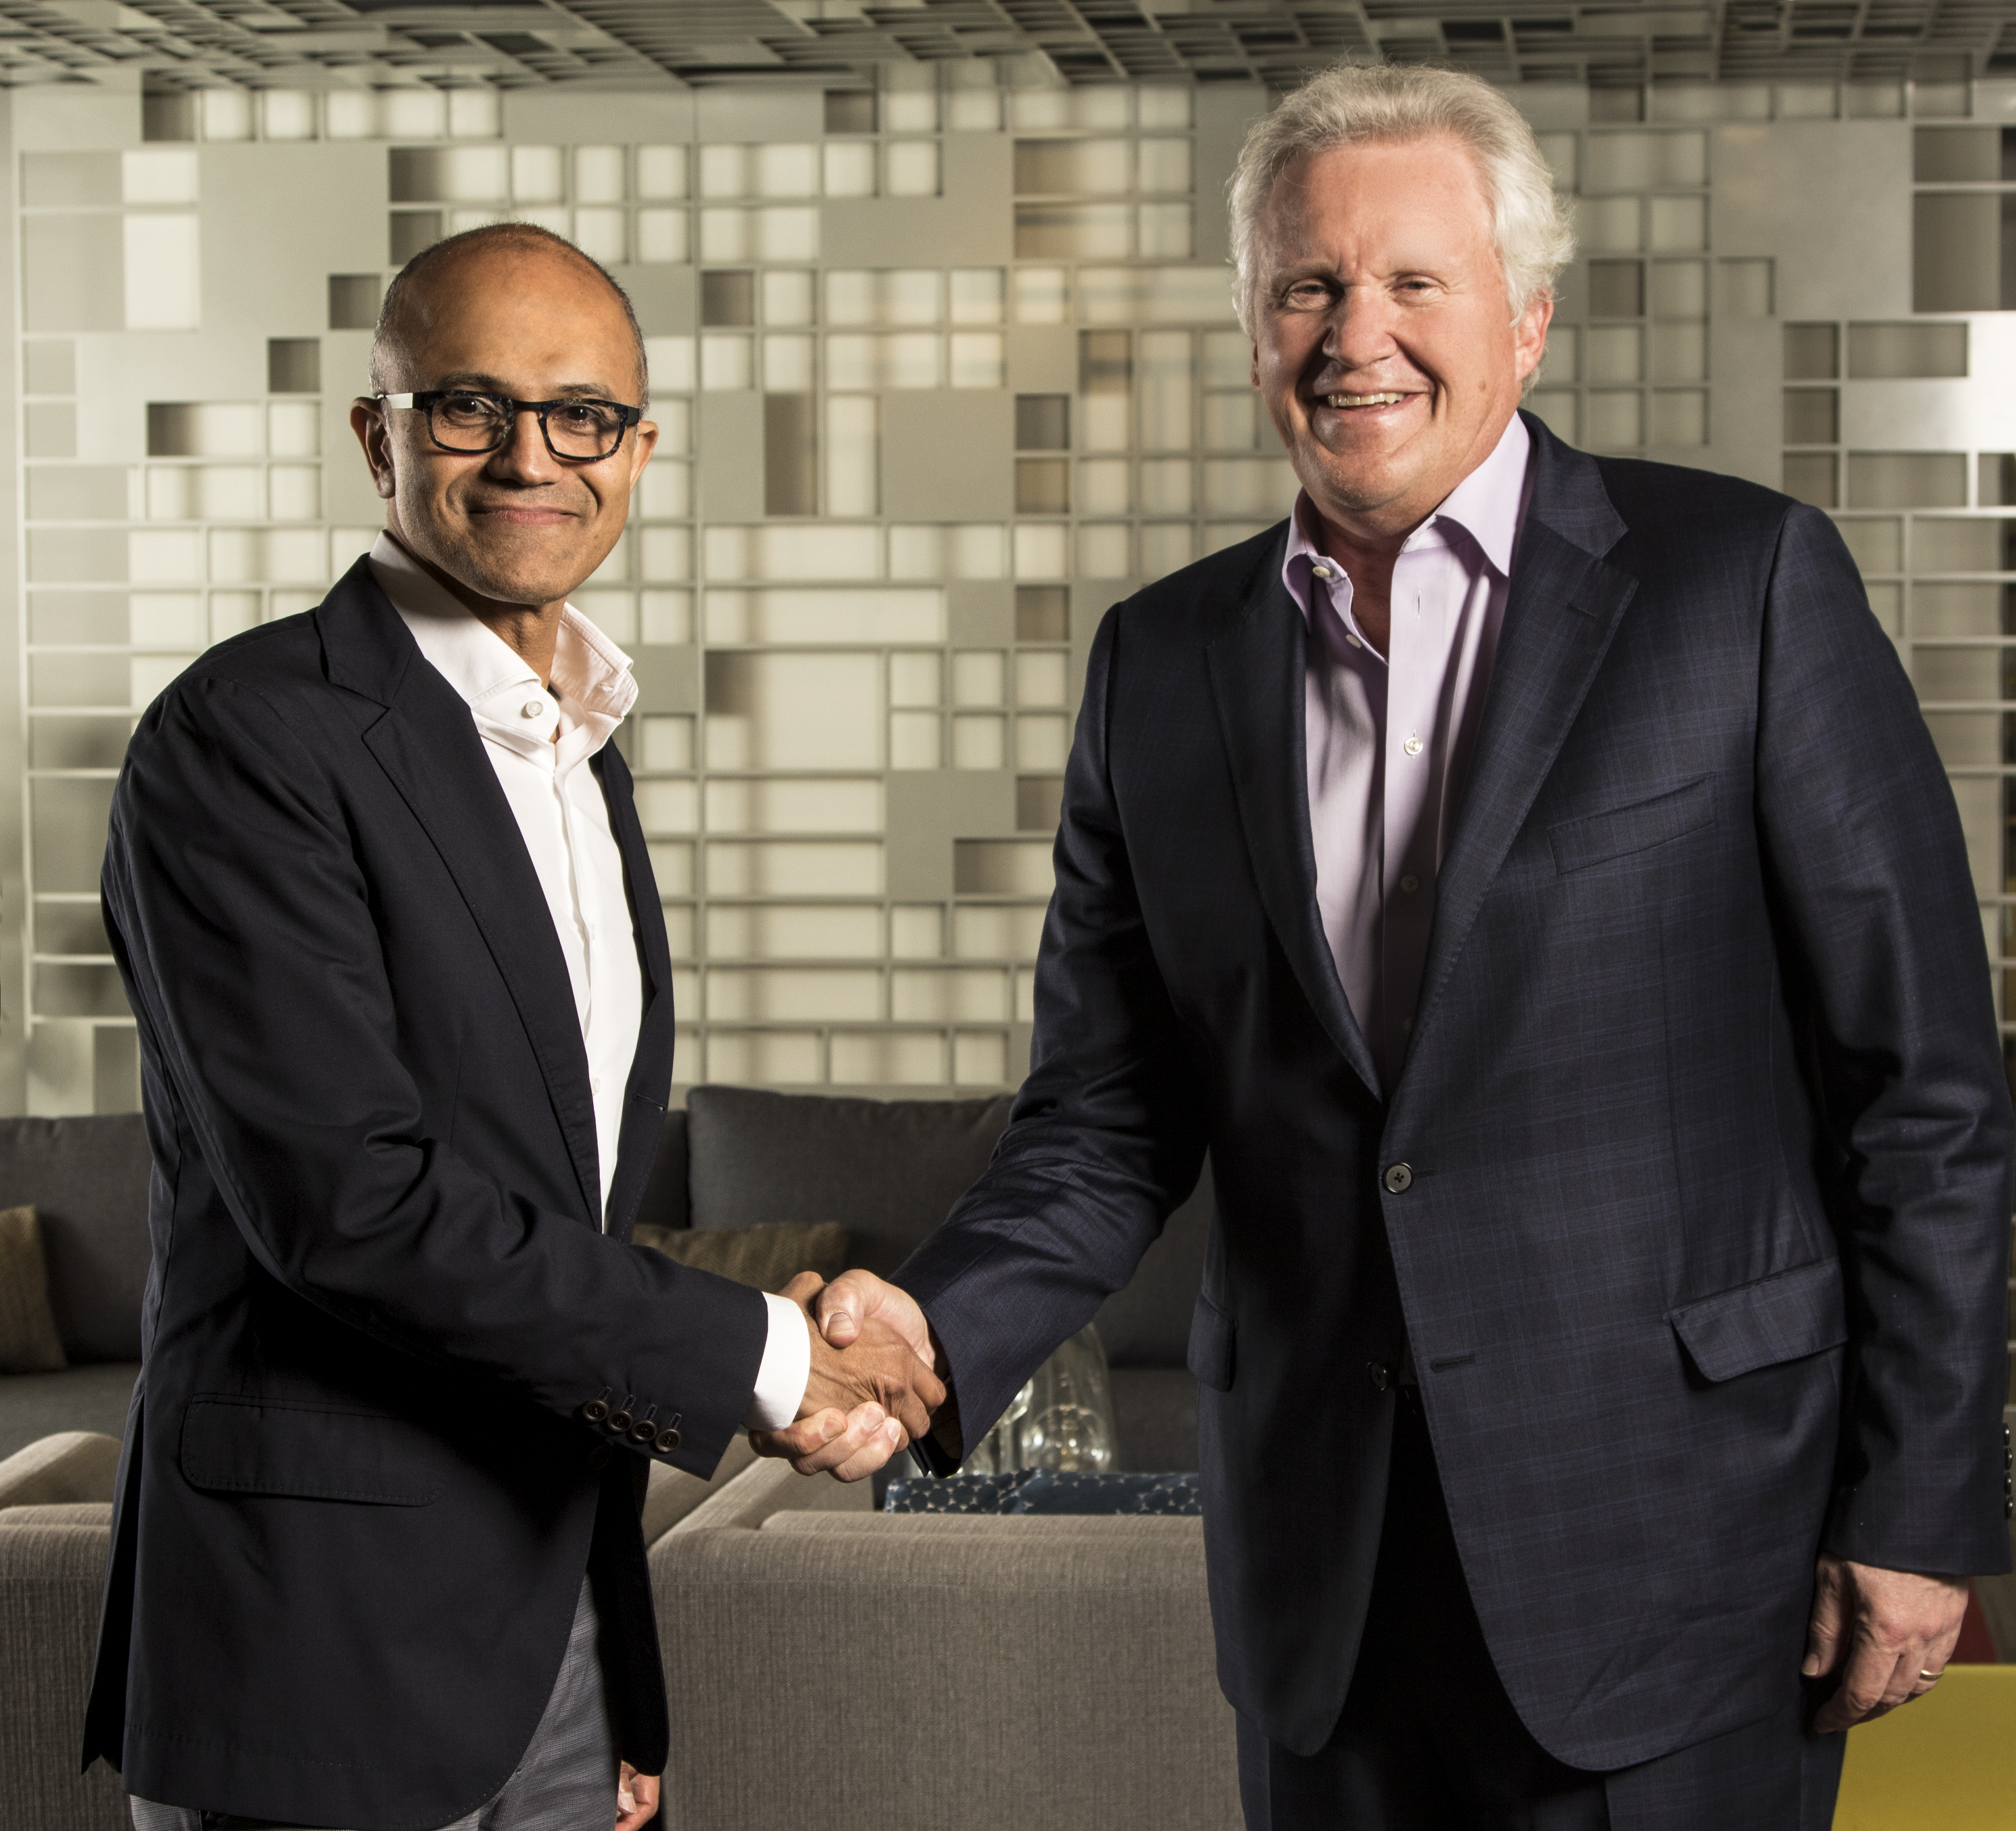 Microsoft CEO Satya Nadella and GE CEO Jeff Immelt today announced a partnership that will make GE's Predix platform for the Industrial Internet available on the Microsoft Azure cloud.